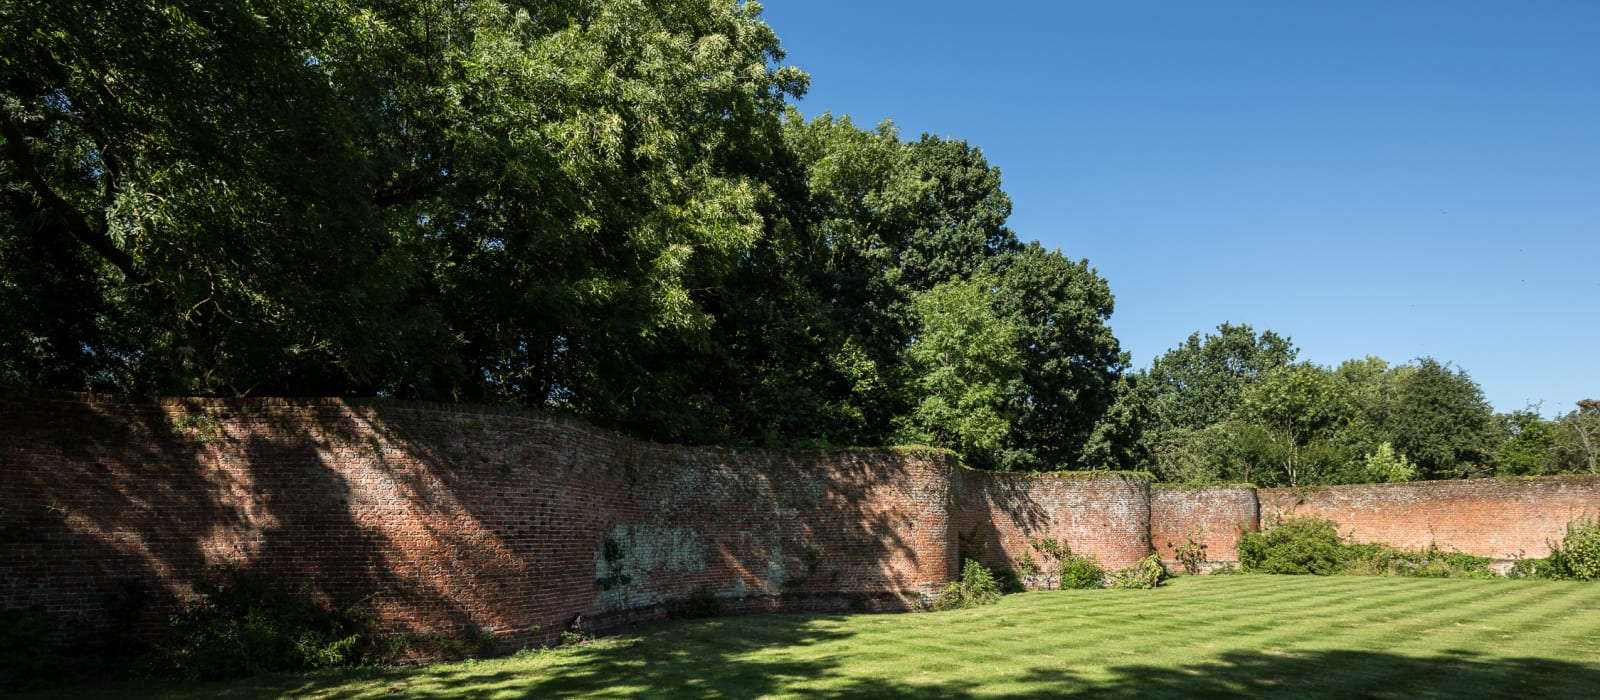 Walled Garden Appeal